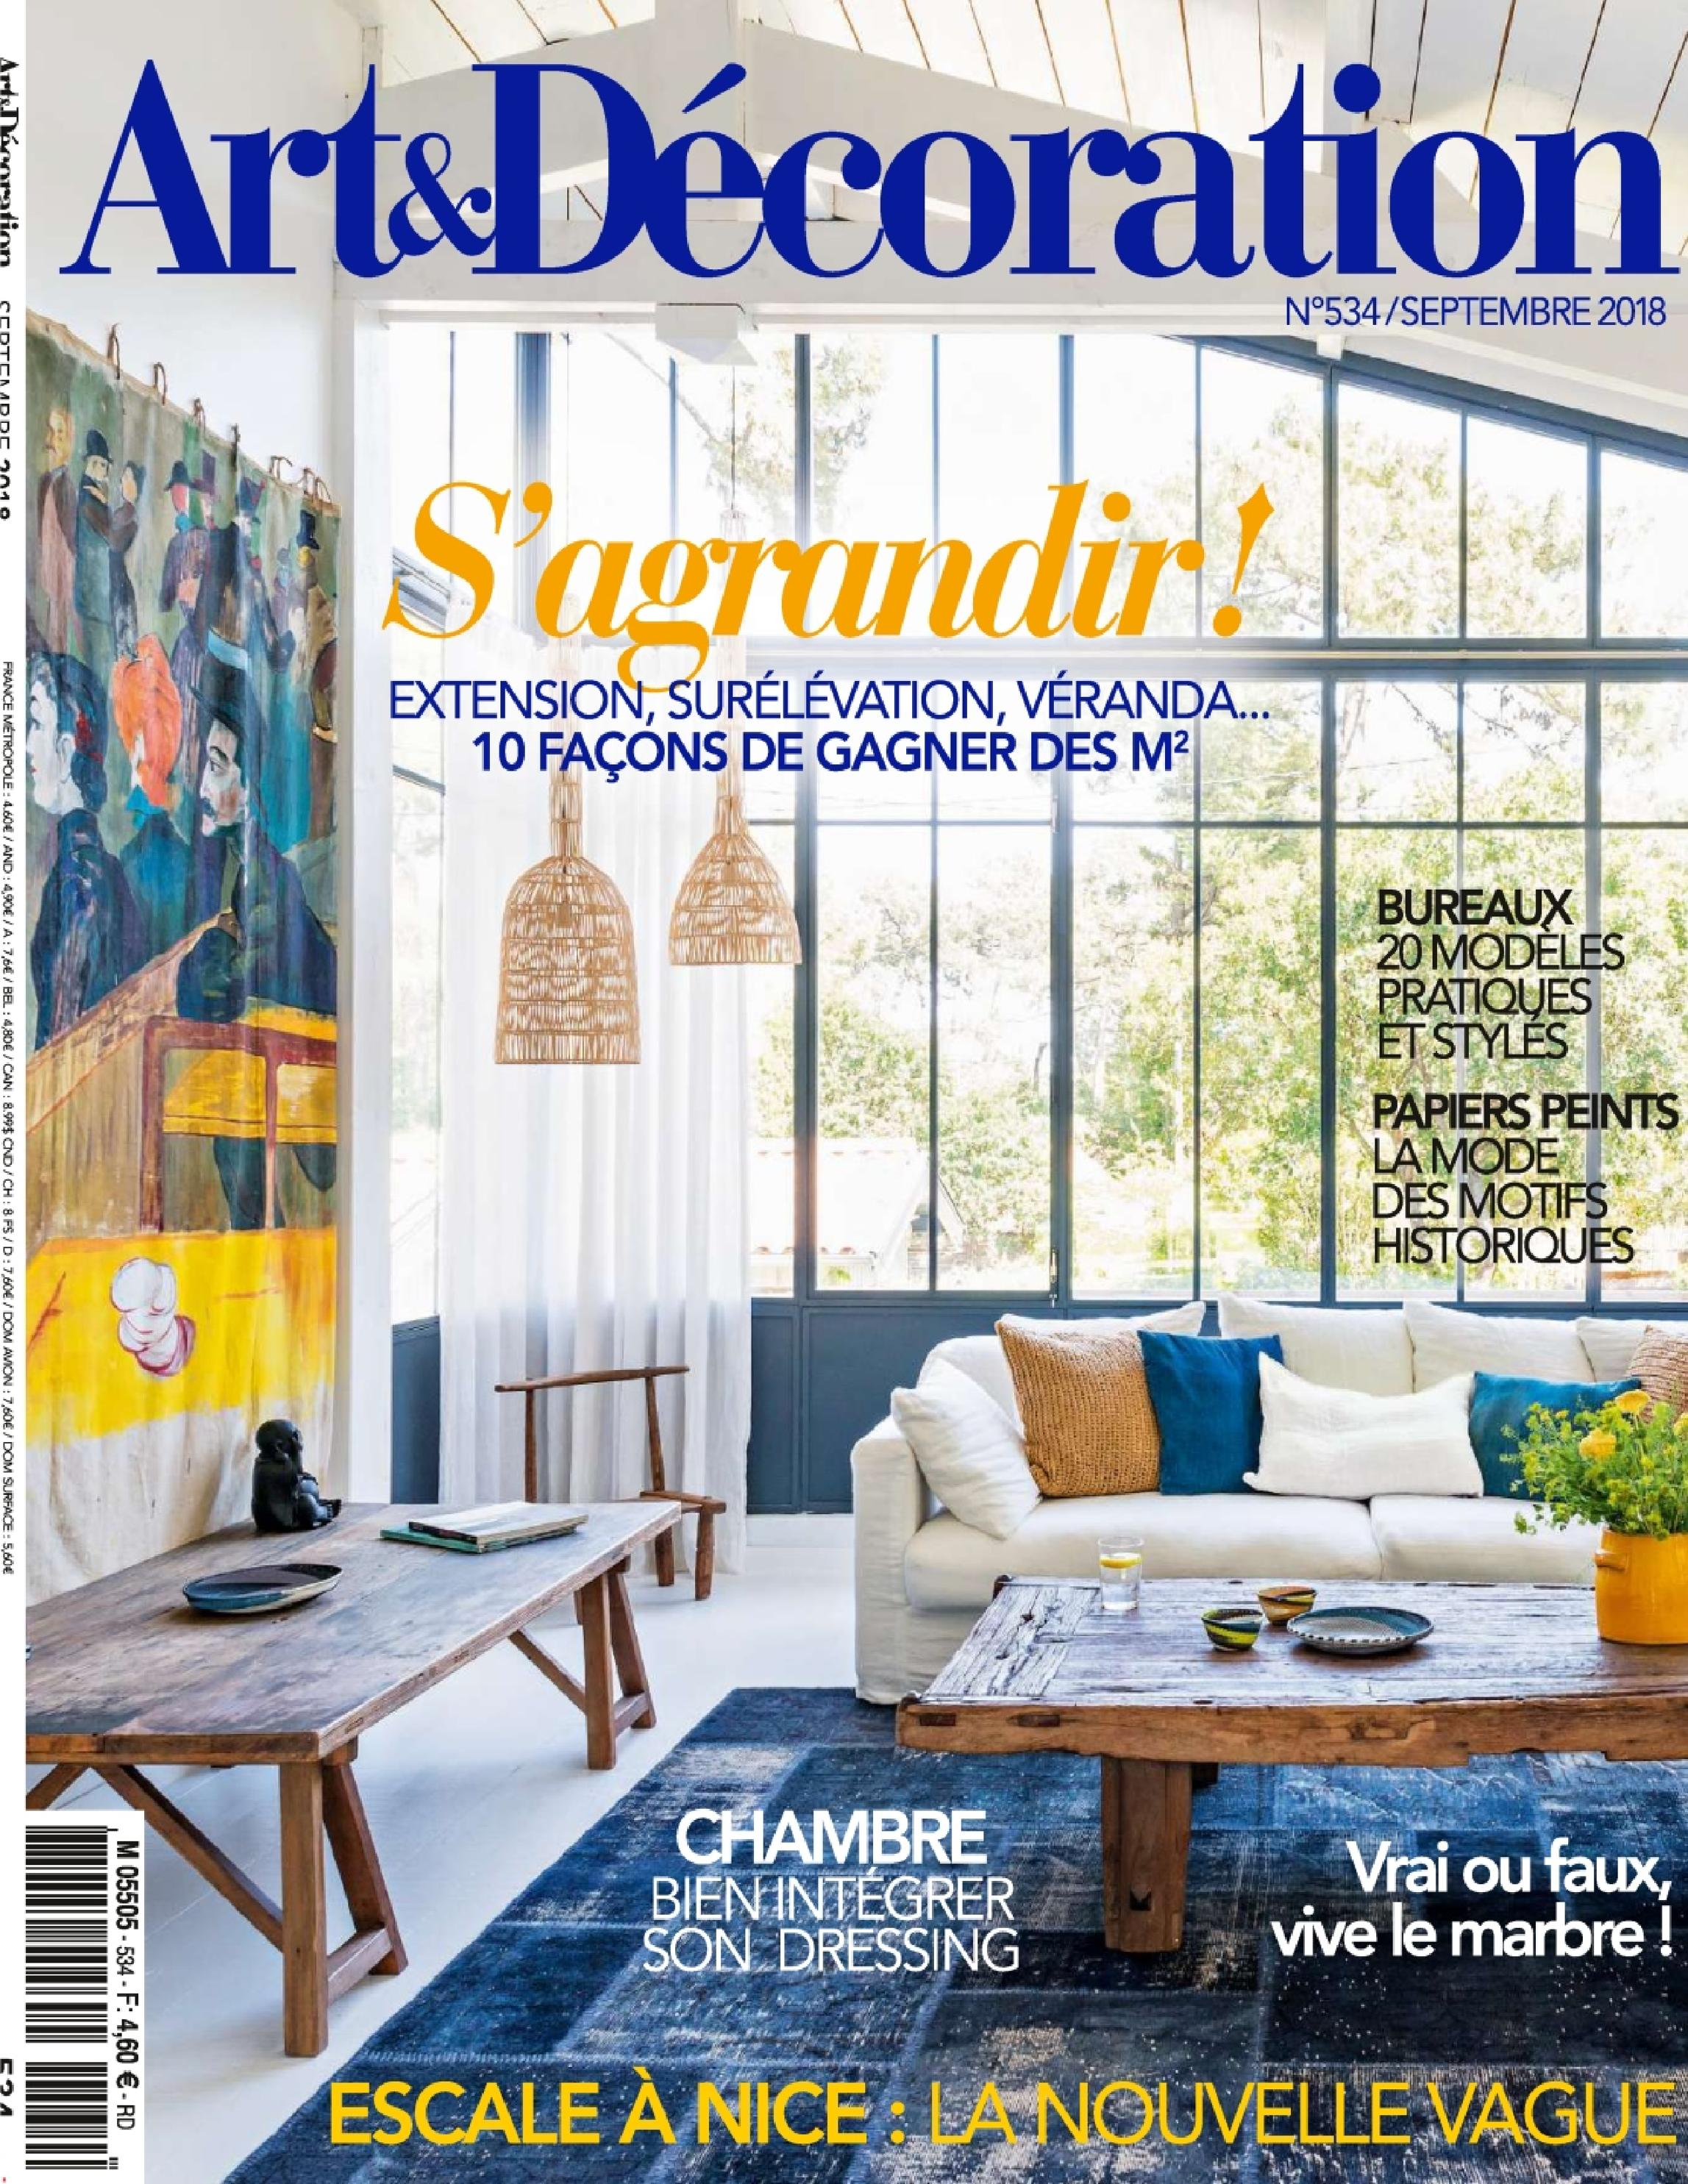 Art Et Decoration Art Decoration France September 2018 Handelsmann Khaw